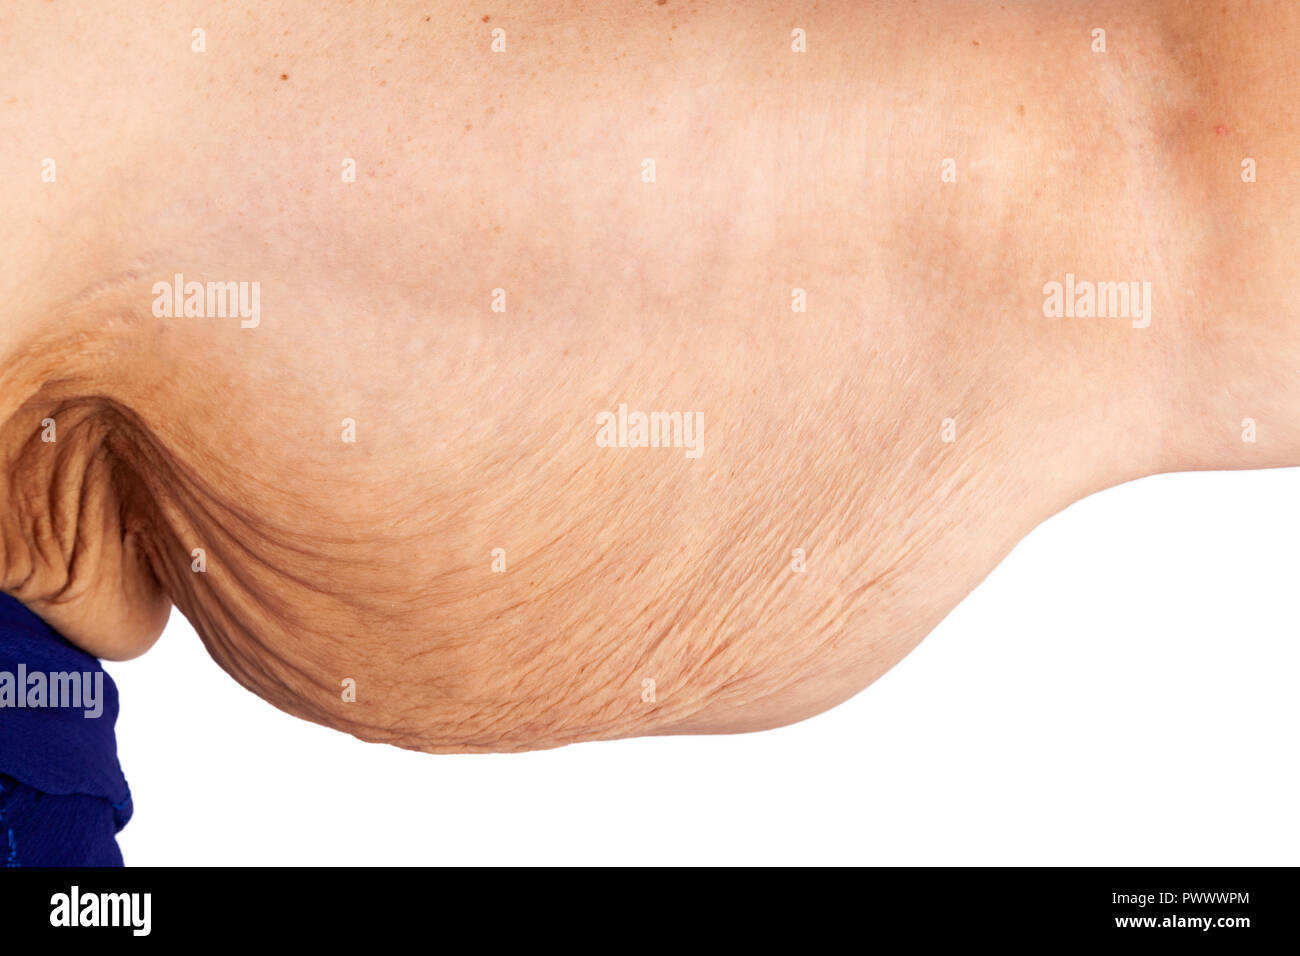 Middle Aged Woman With Saggy Skin After Extreme Weight Loss Skin